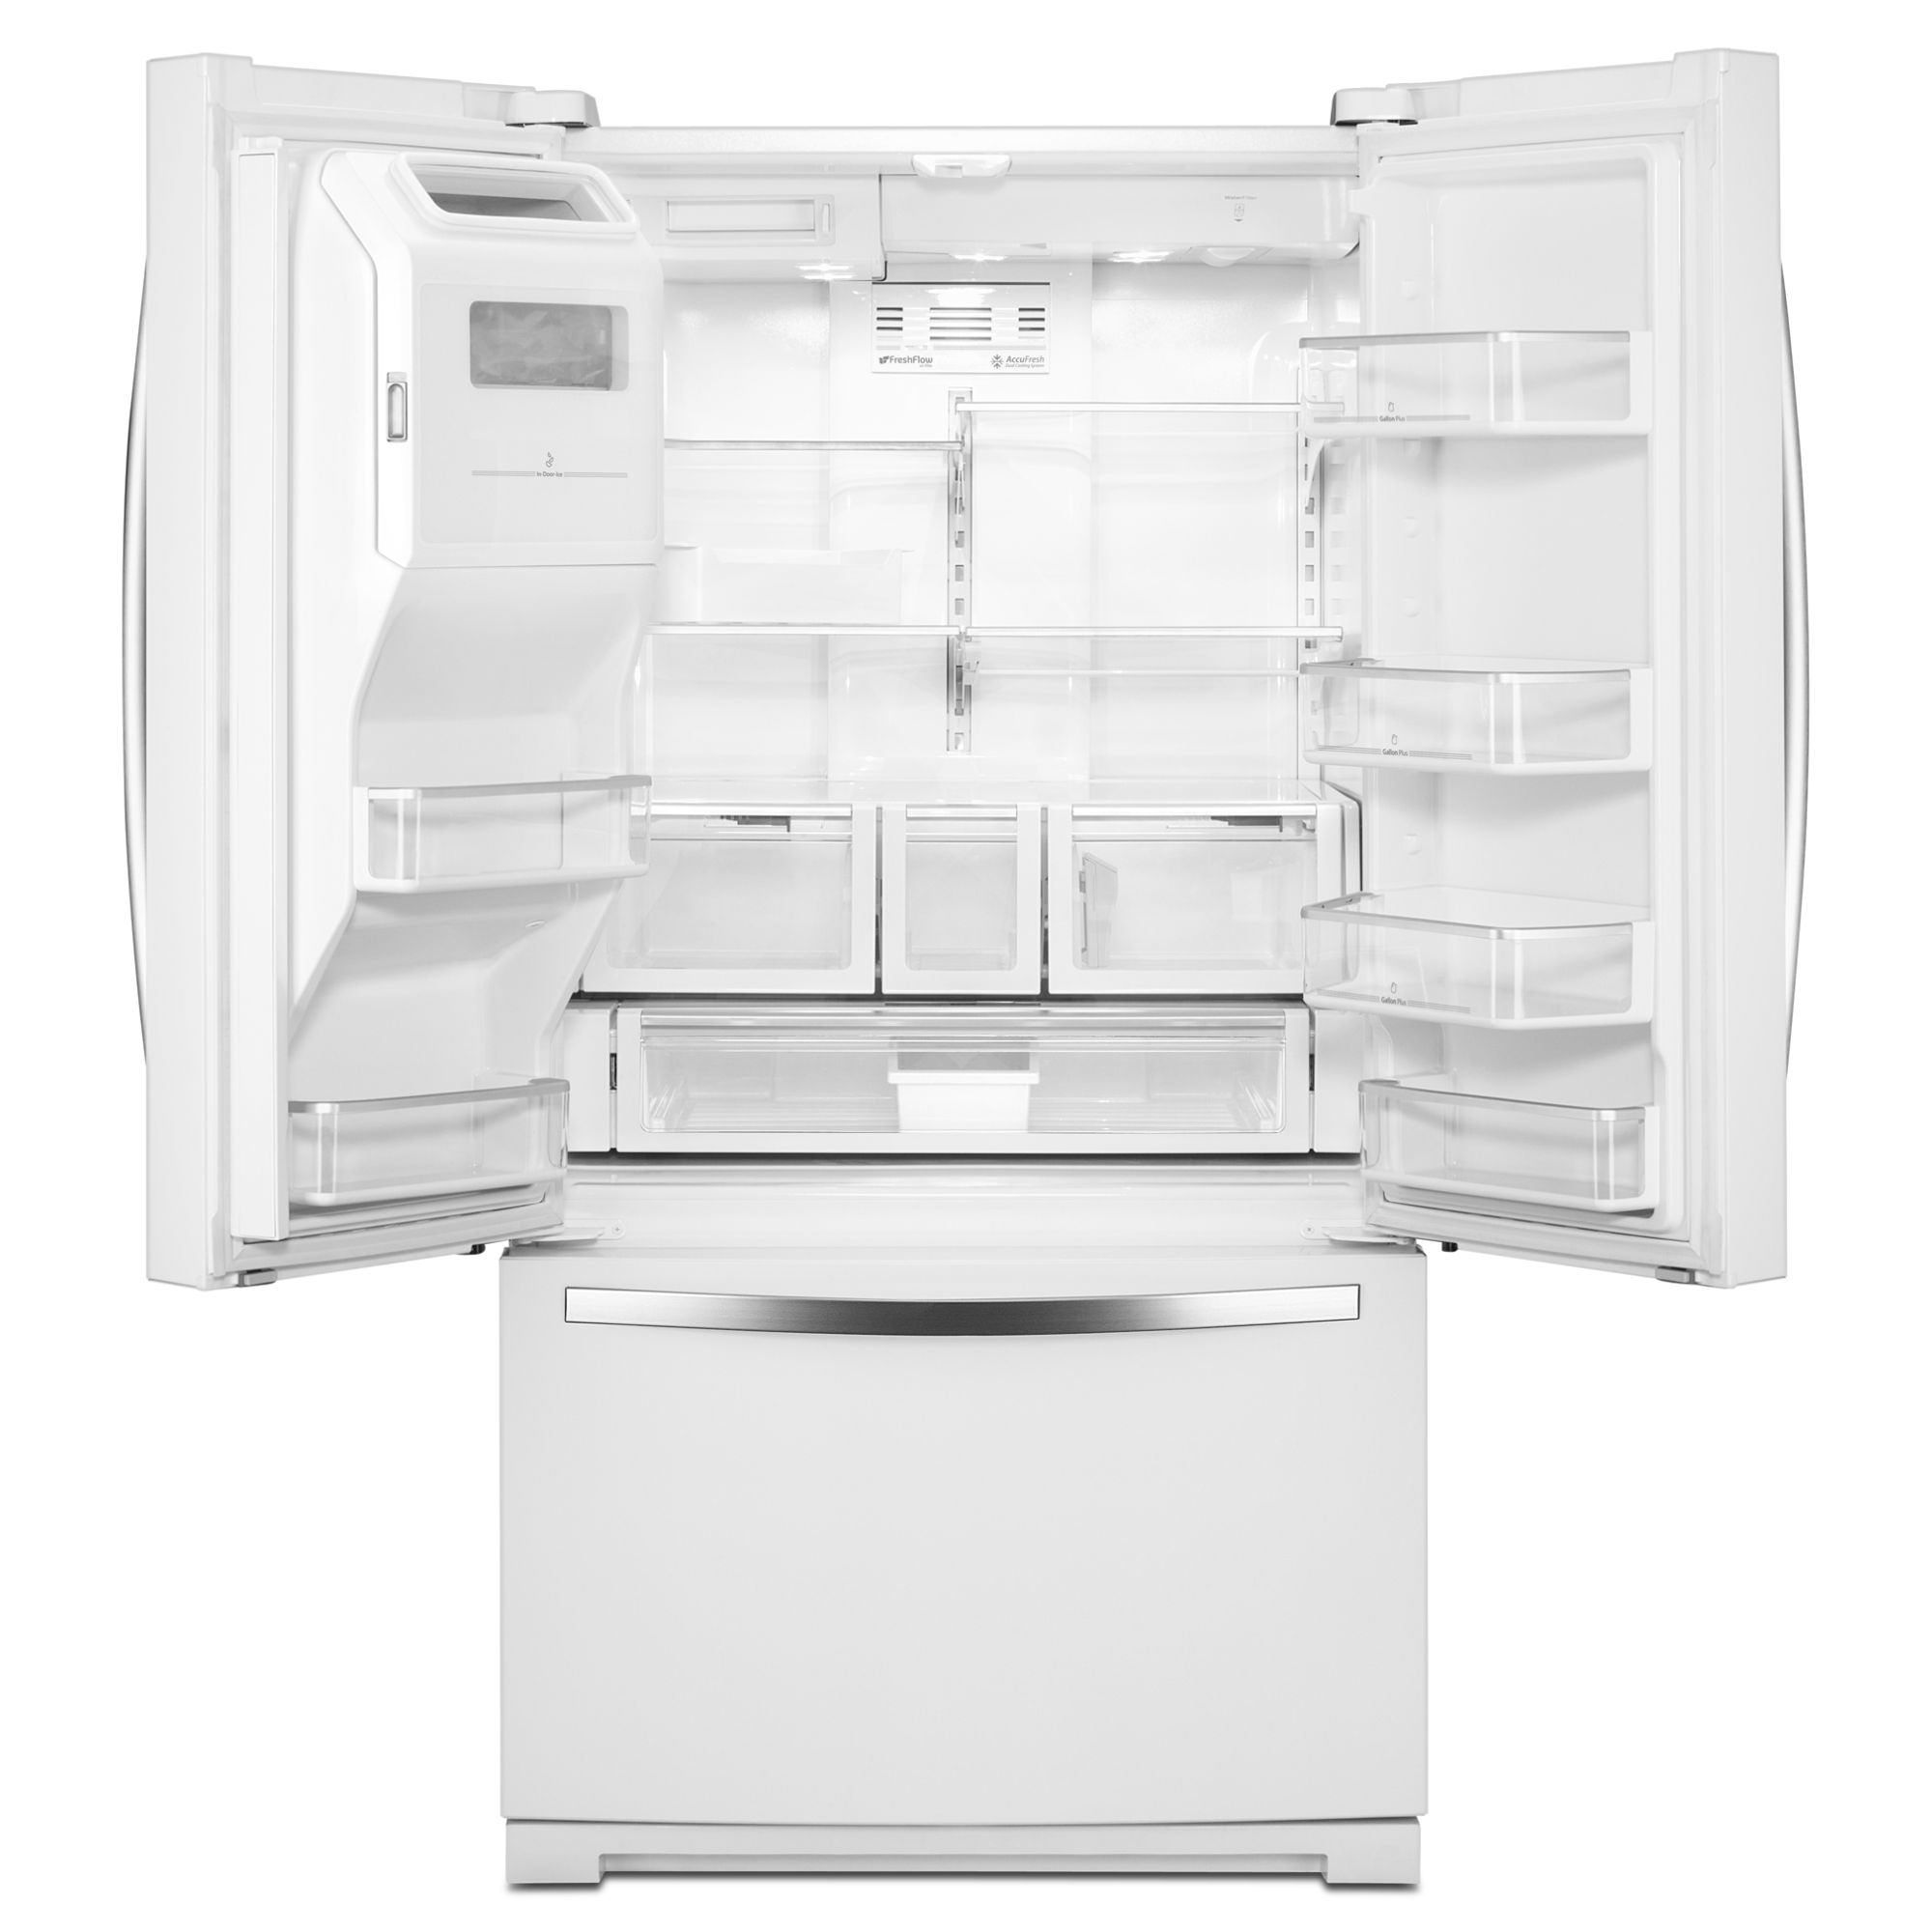 Whirlpool Gold 27 cu. ft. French Door Refrigerator - White Ice